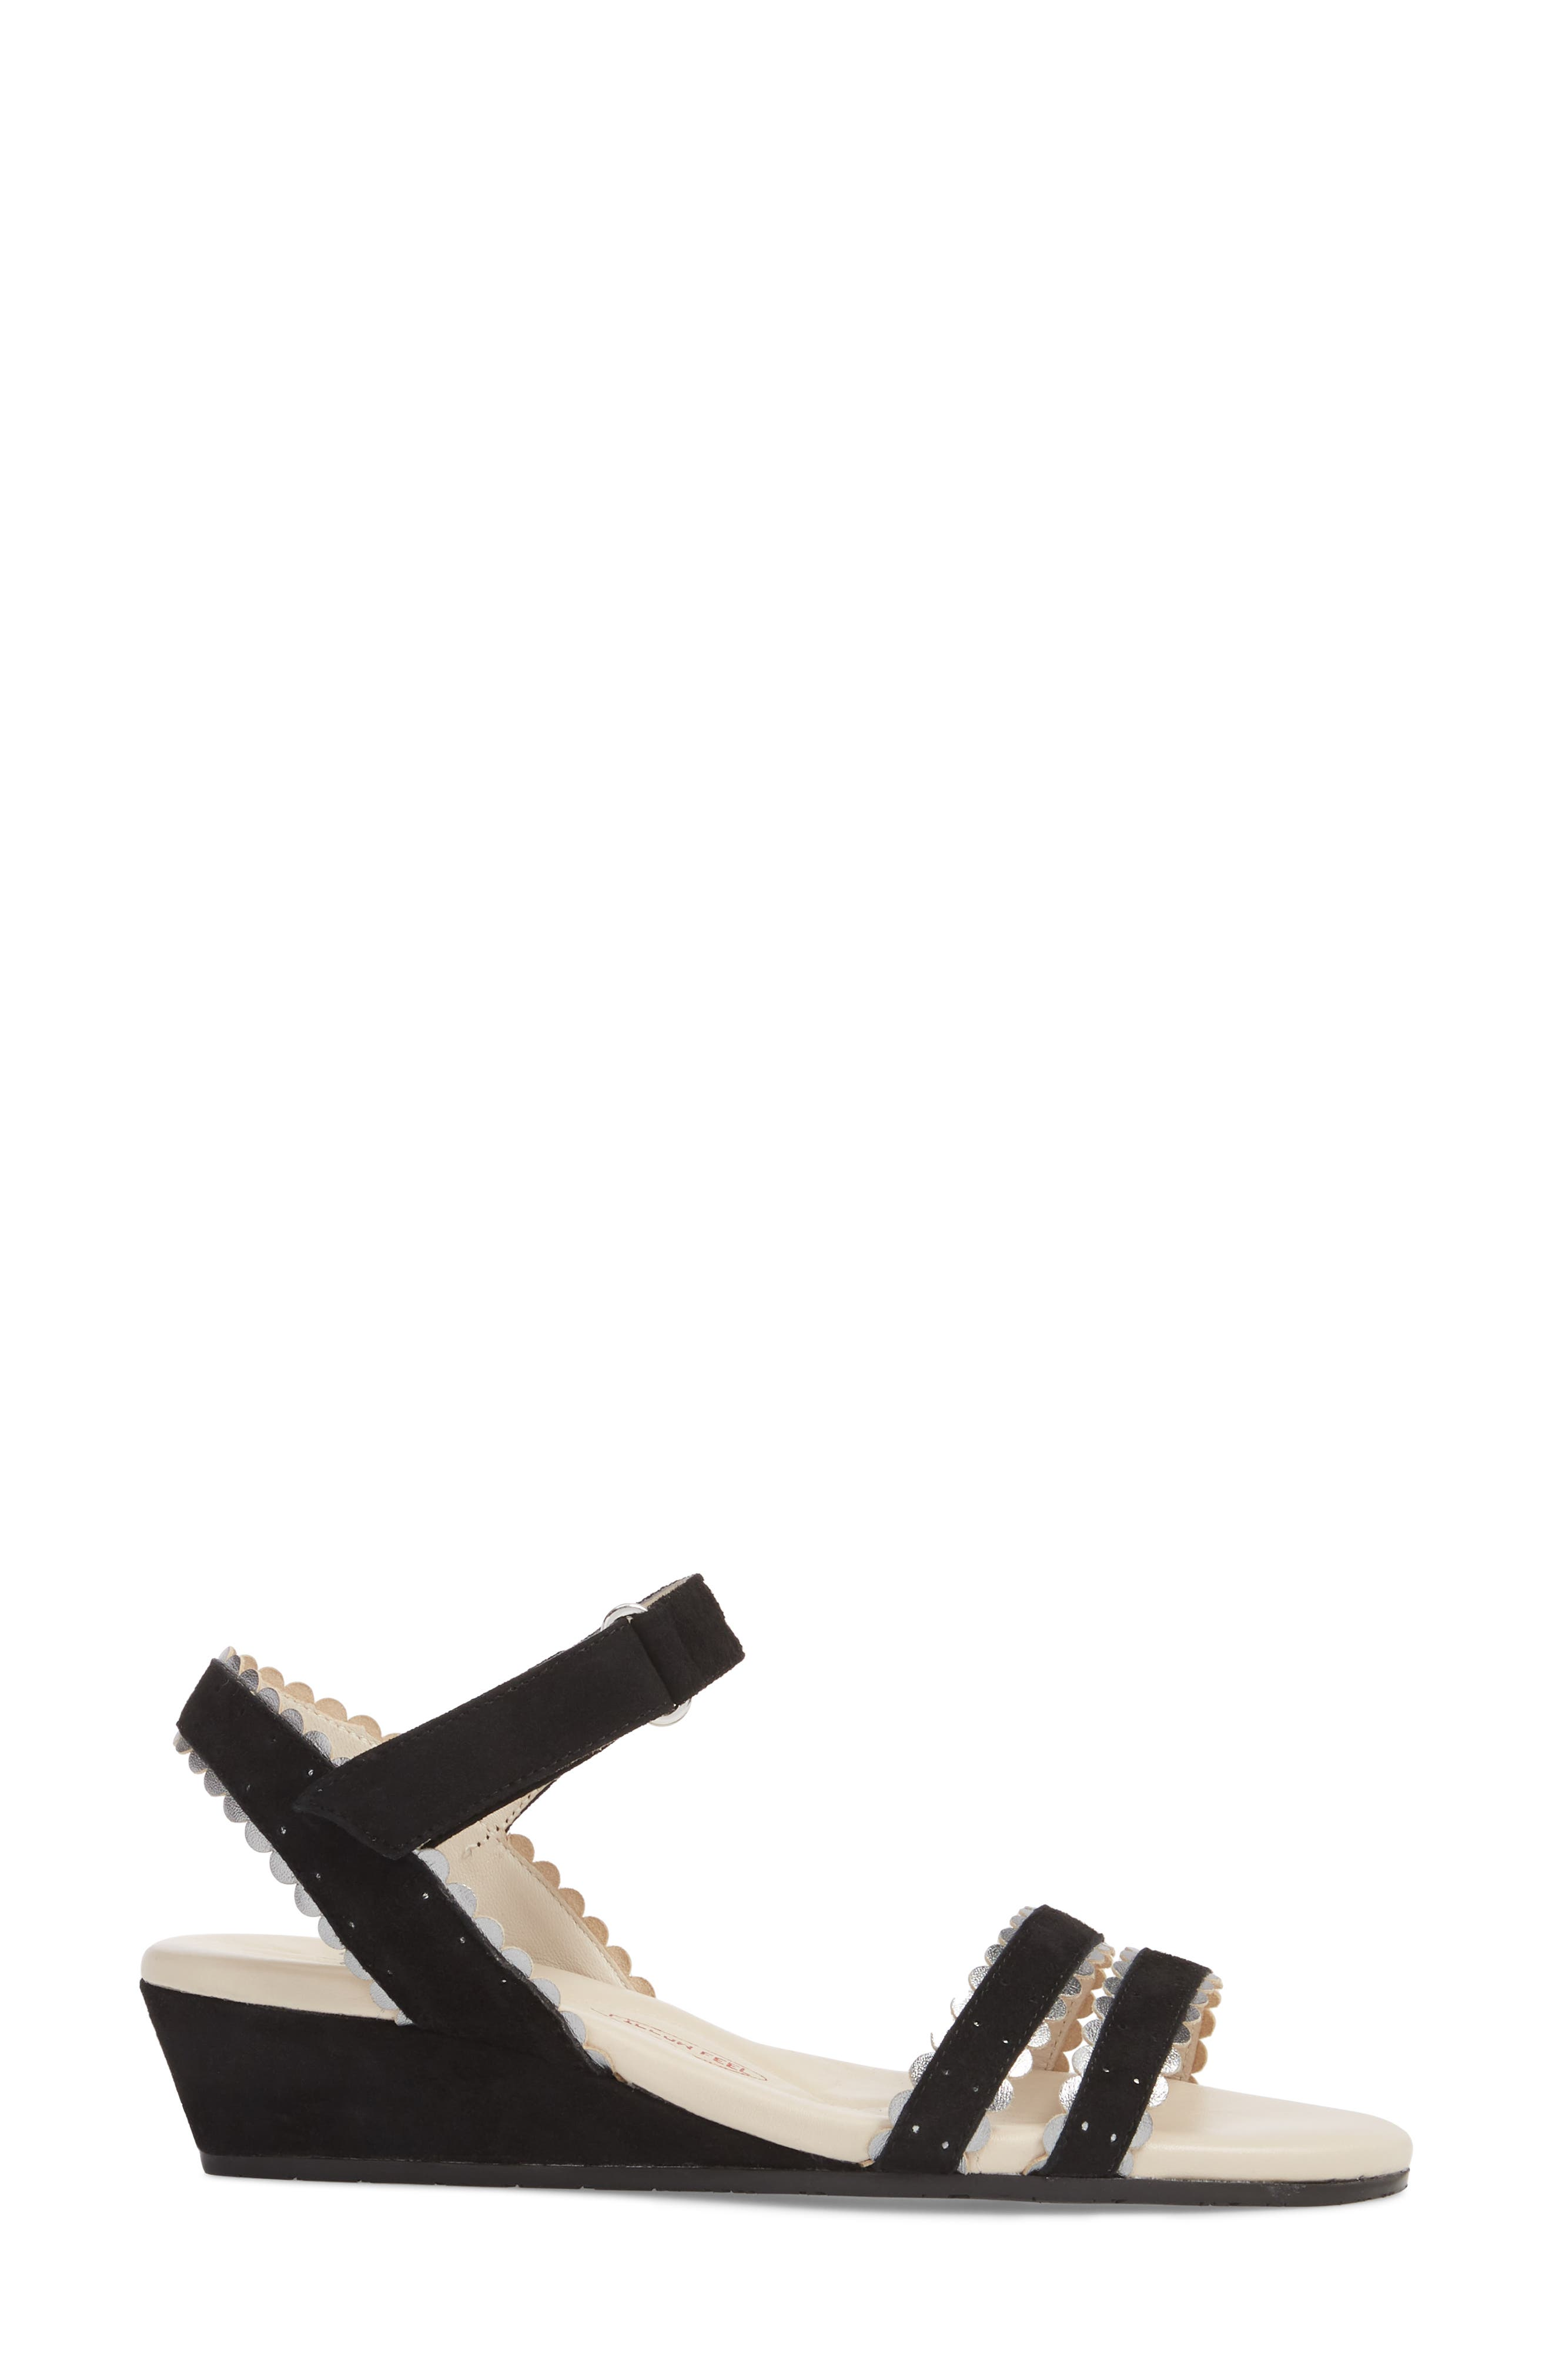 Messina Wedge Sandal,                             Alternate thumbnail 3, color,                             BLACK SUEDE